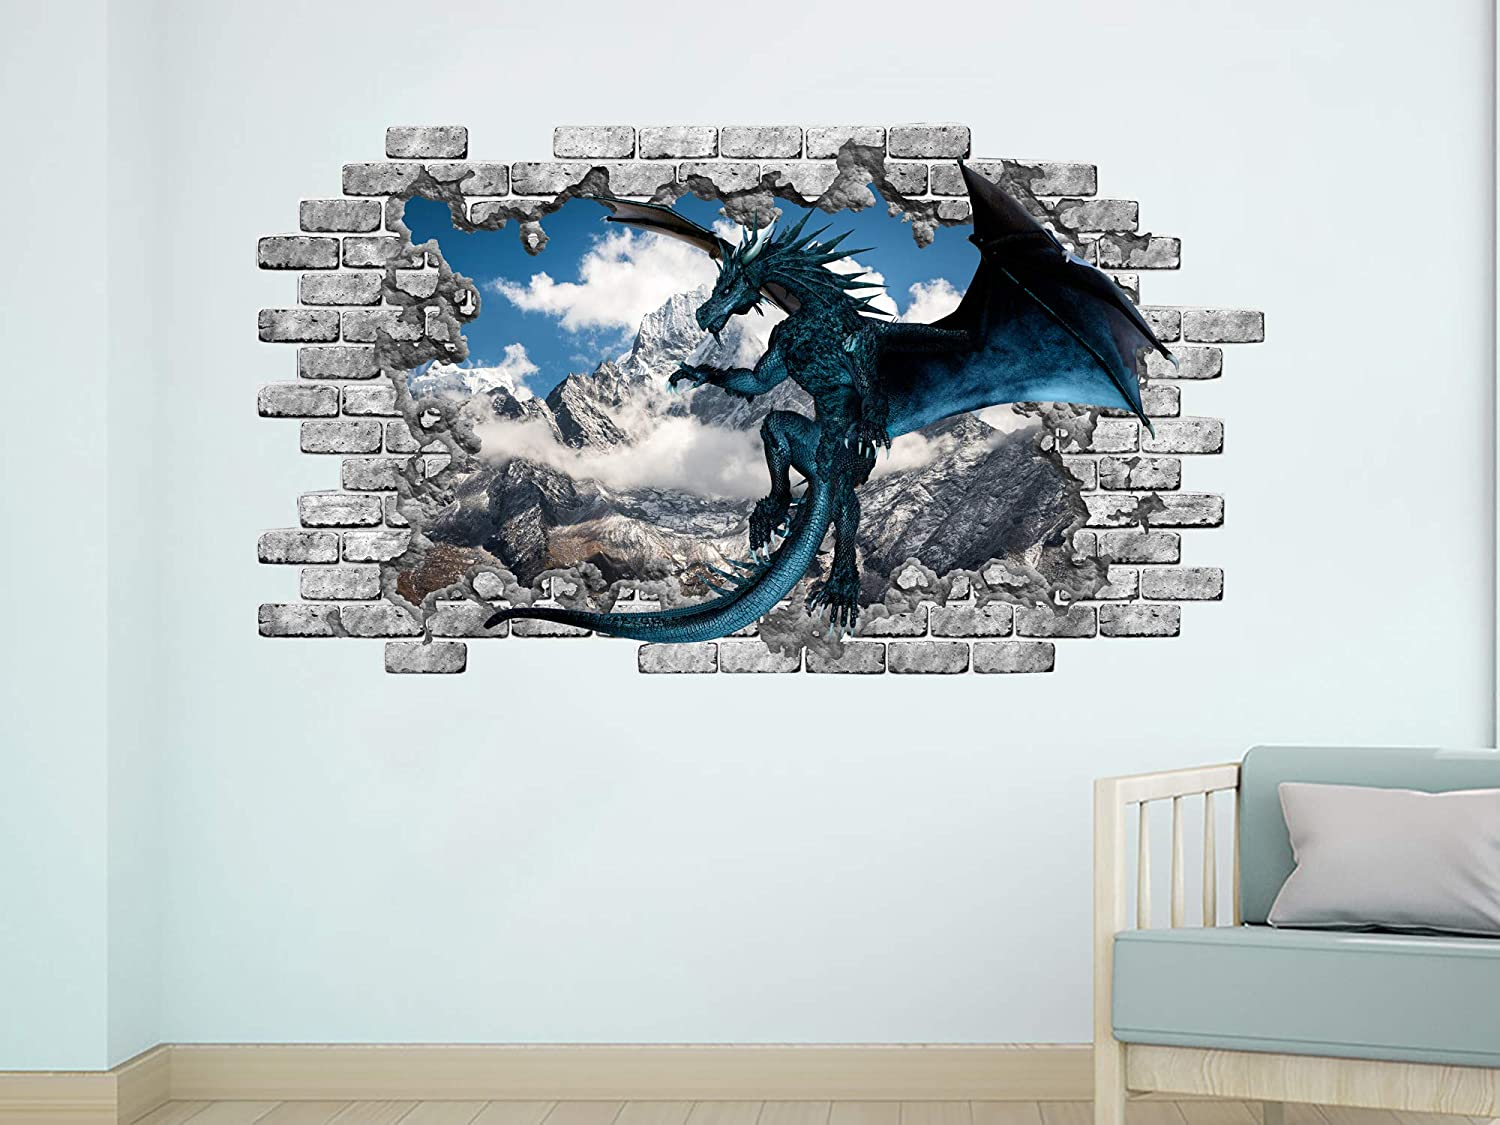 Peel and Stick Dragon Wall Mural Mountains Removable Vinyl Sticker Dragon Bedroom Decor NT23 Blue Dragon Wall Decal